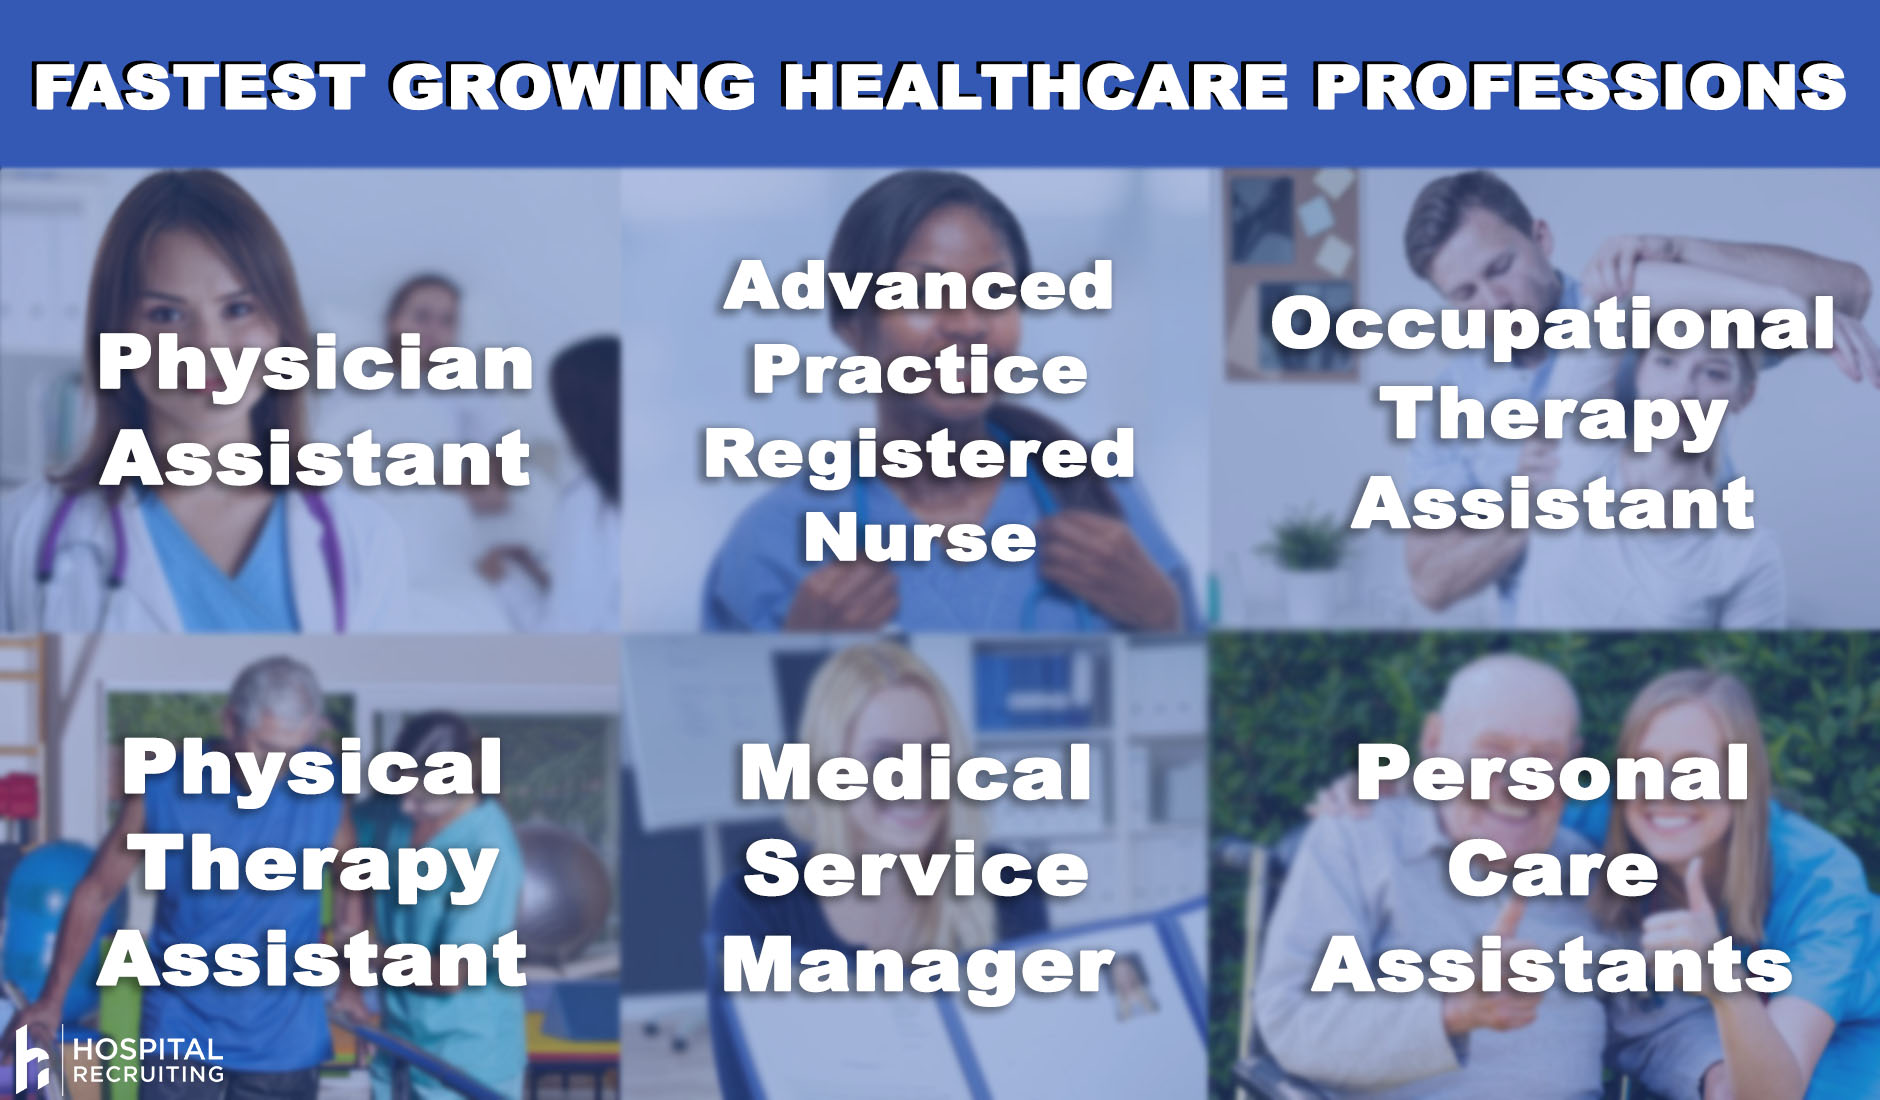 The Fastest Growing Health Care Occupations in 2021 and Beyond thumbnail image